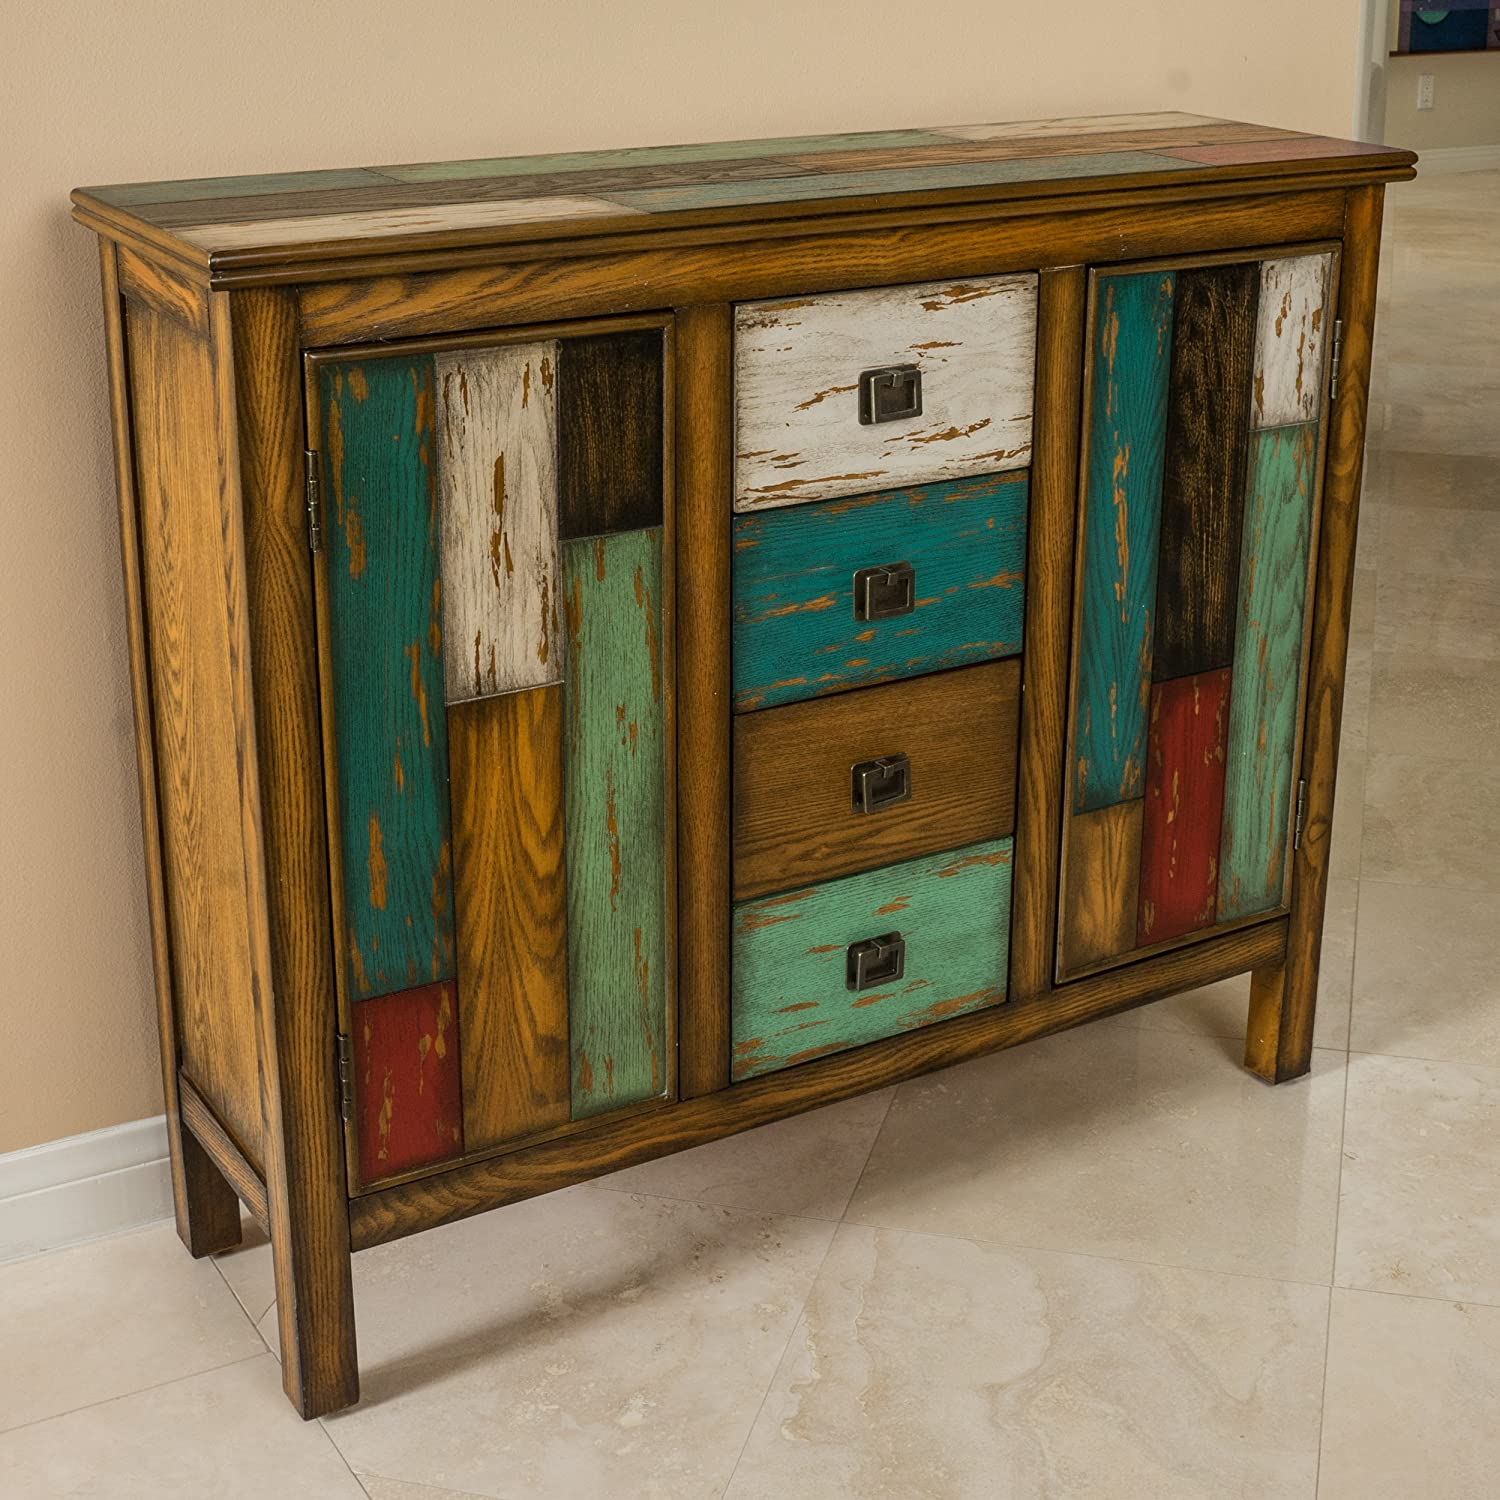 Amazon.com: Great Deal Furniture | Delaney | Antique Distressed Wood  Storage Cabinet | in Multicolor: Kitchen & Dining - Amazon.com: Great Deal Furniture Delaney Antique Distressed Wood